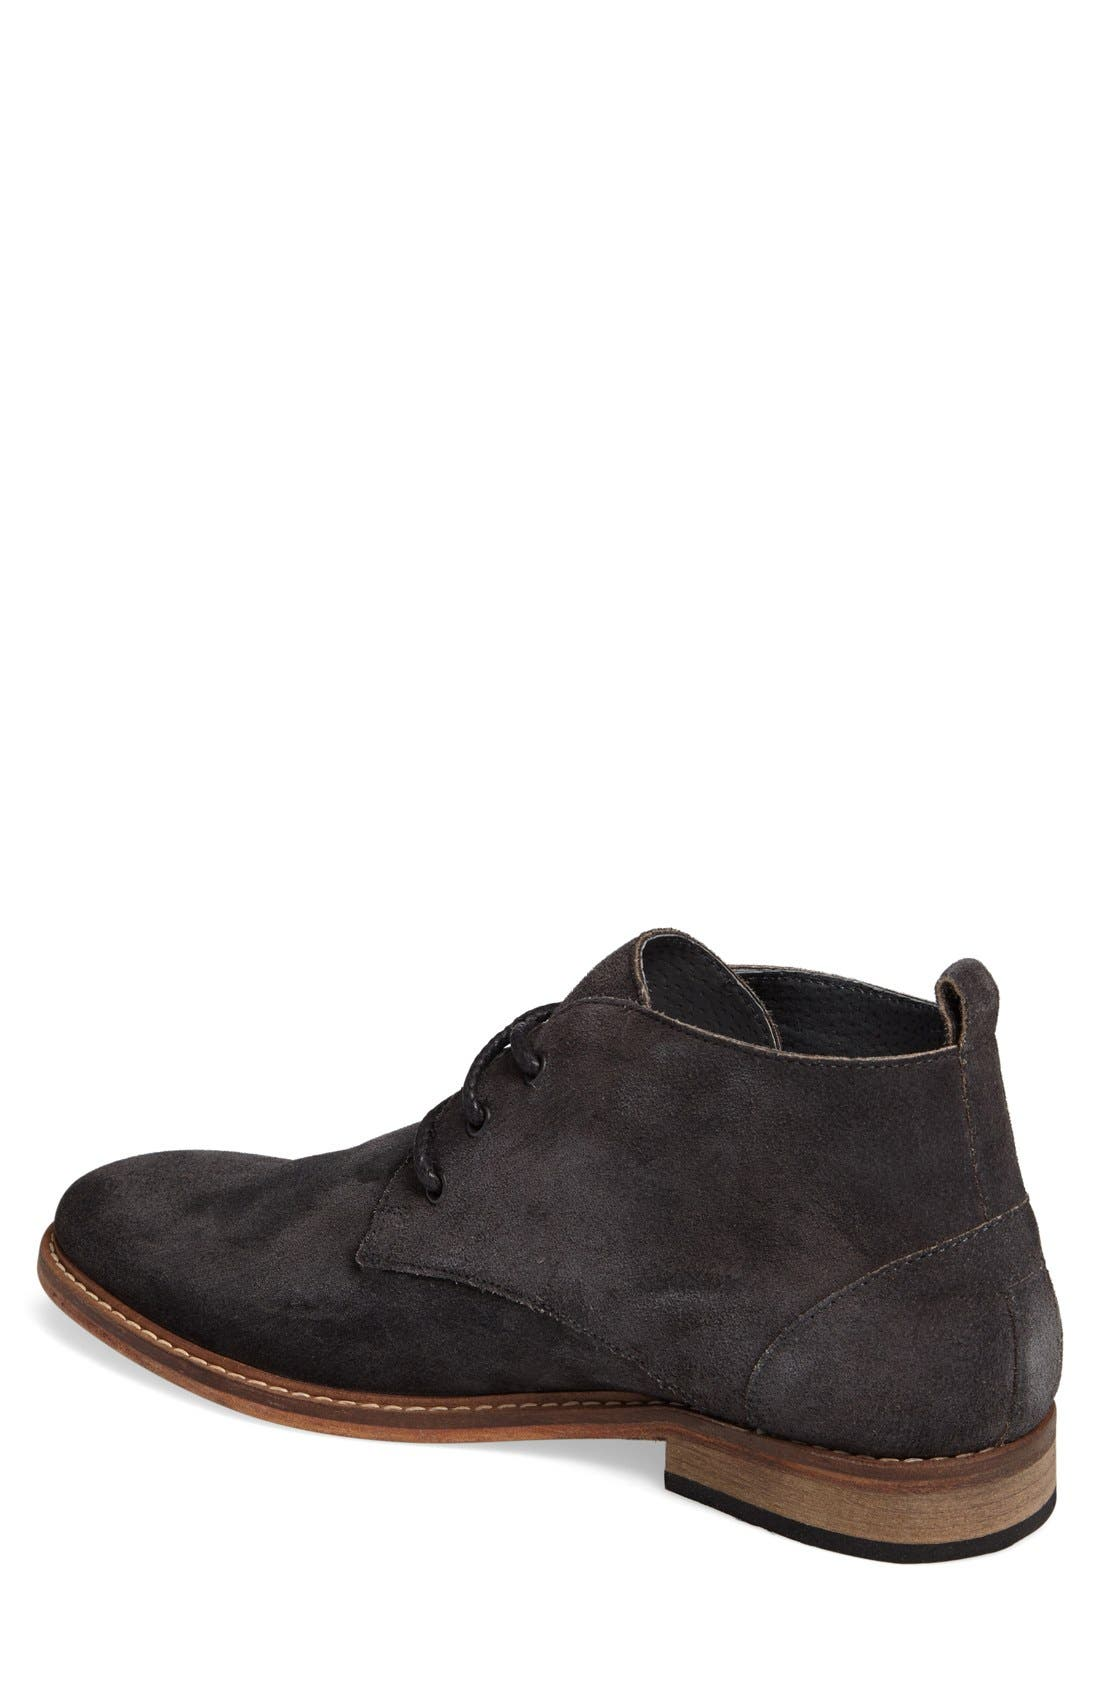 Prove Out Chukka Boot,                             Alternate thumbnail 3, color,                             020